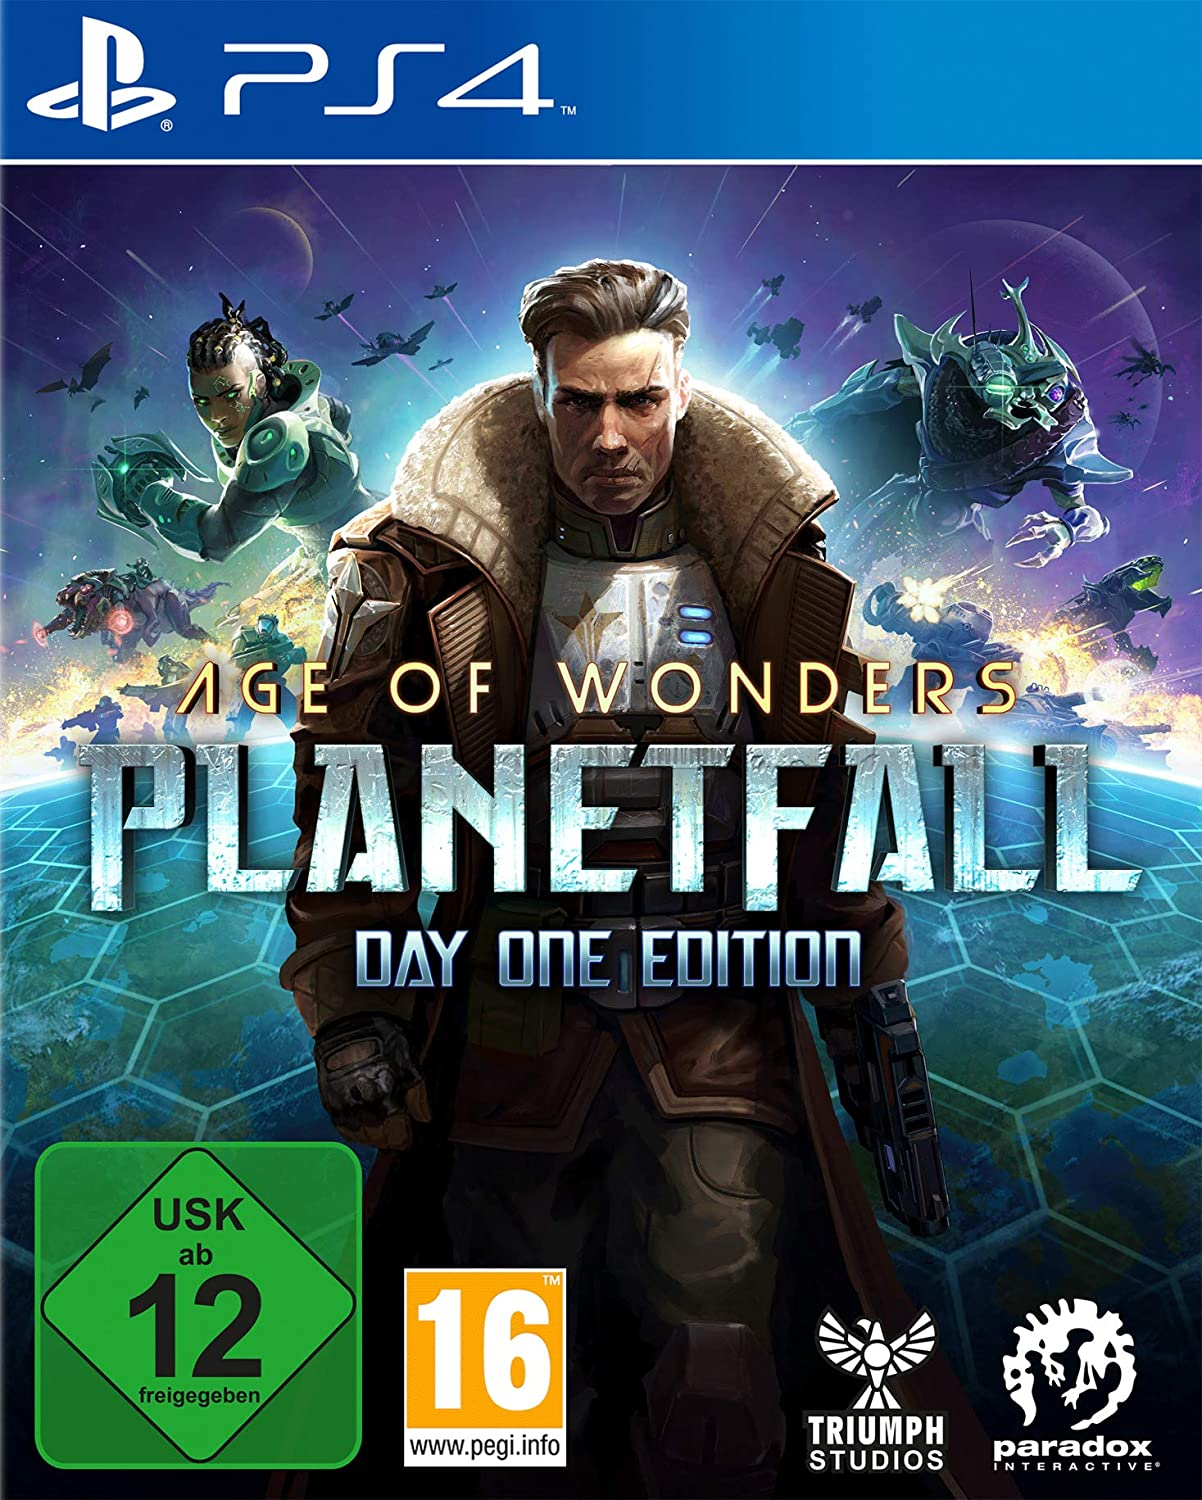 Age of Wonders Planetfall PS4